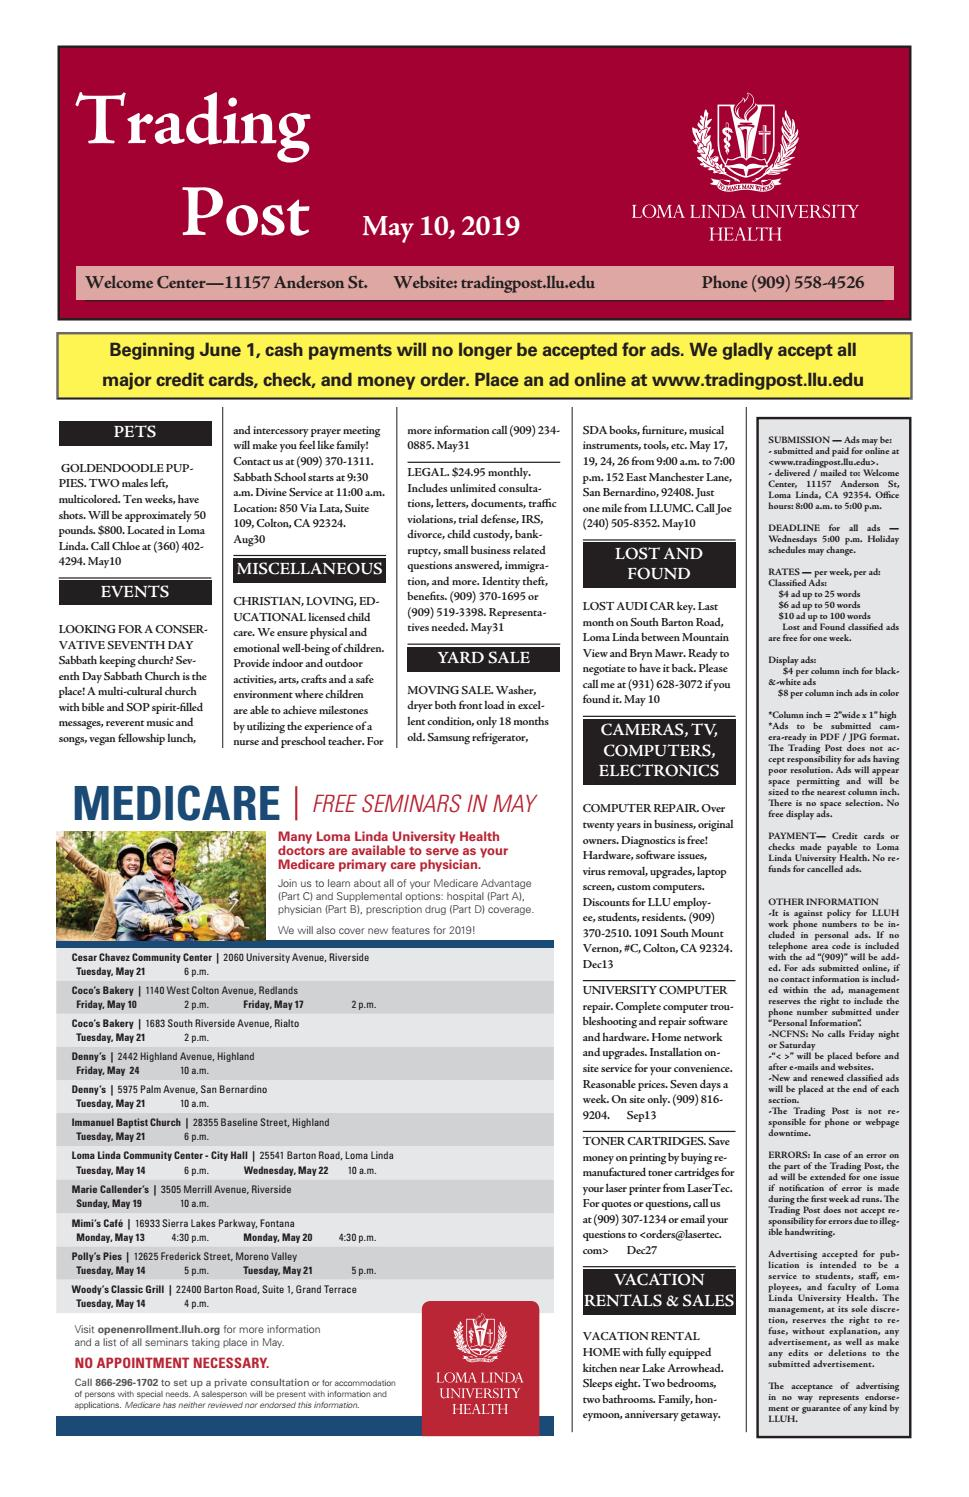 Trading Post May 10 2019 By Loma Linda University Health Issuu